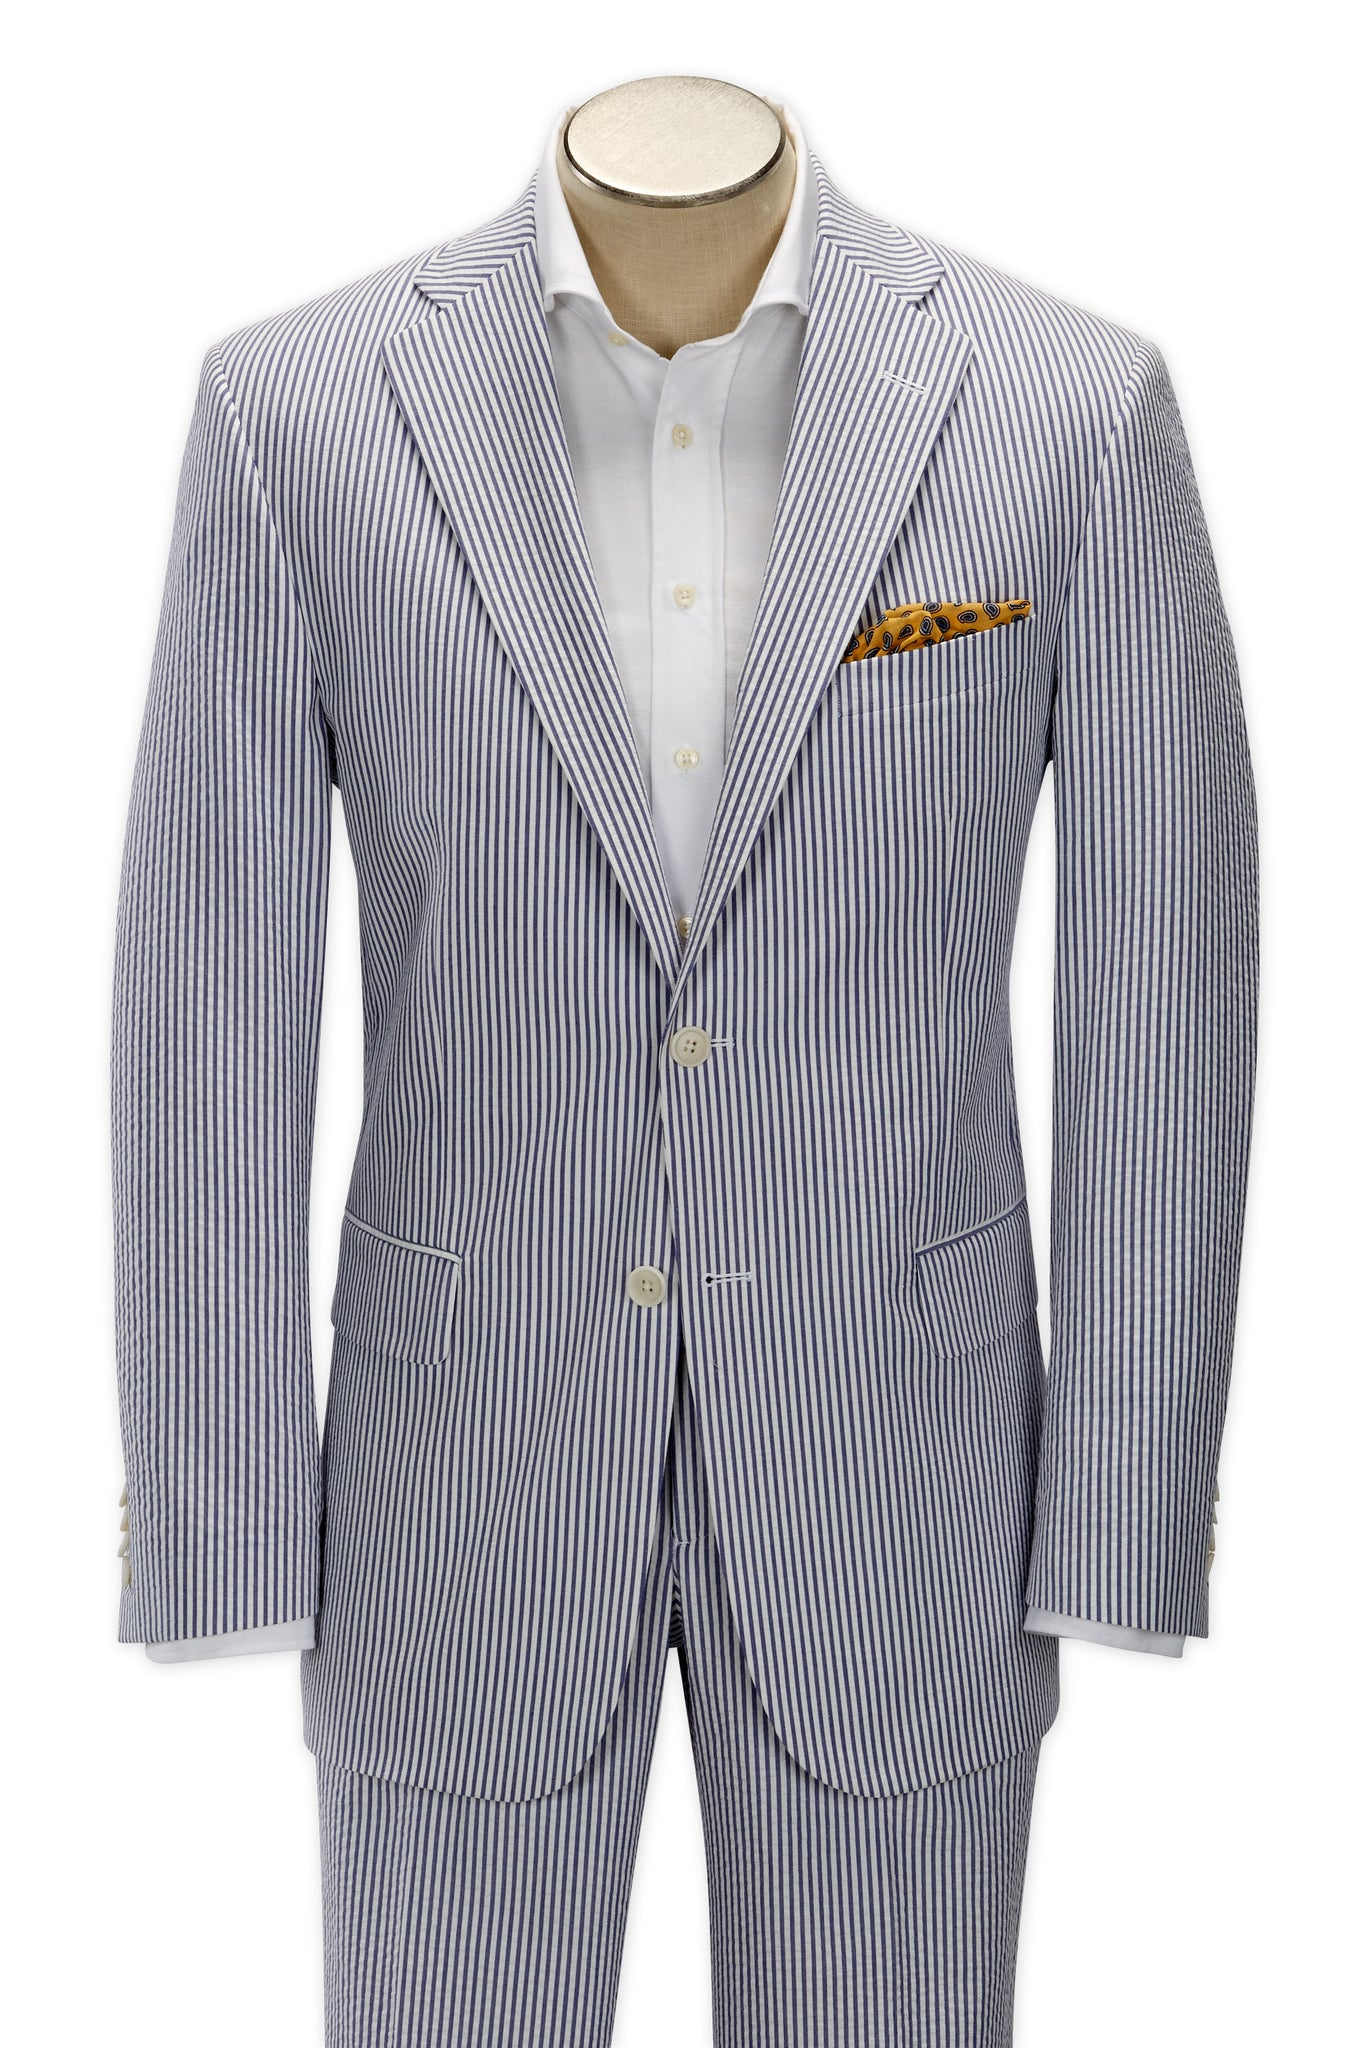 Classic Fit Seersucker Suit Separate Jacket -  Hardwick.com